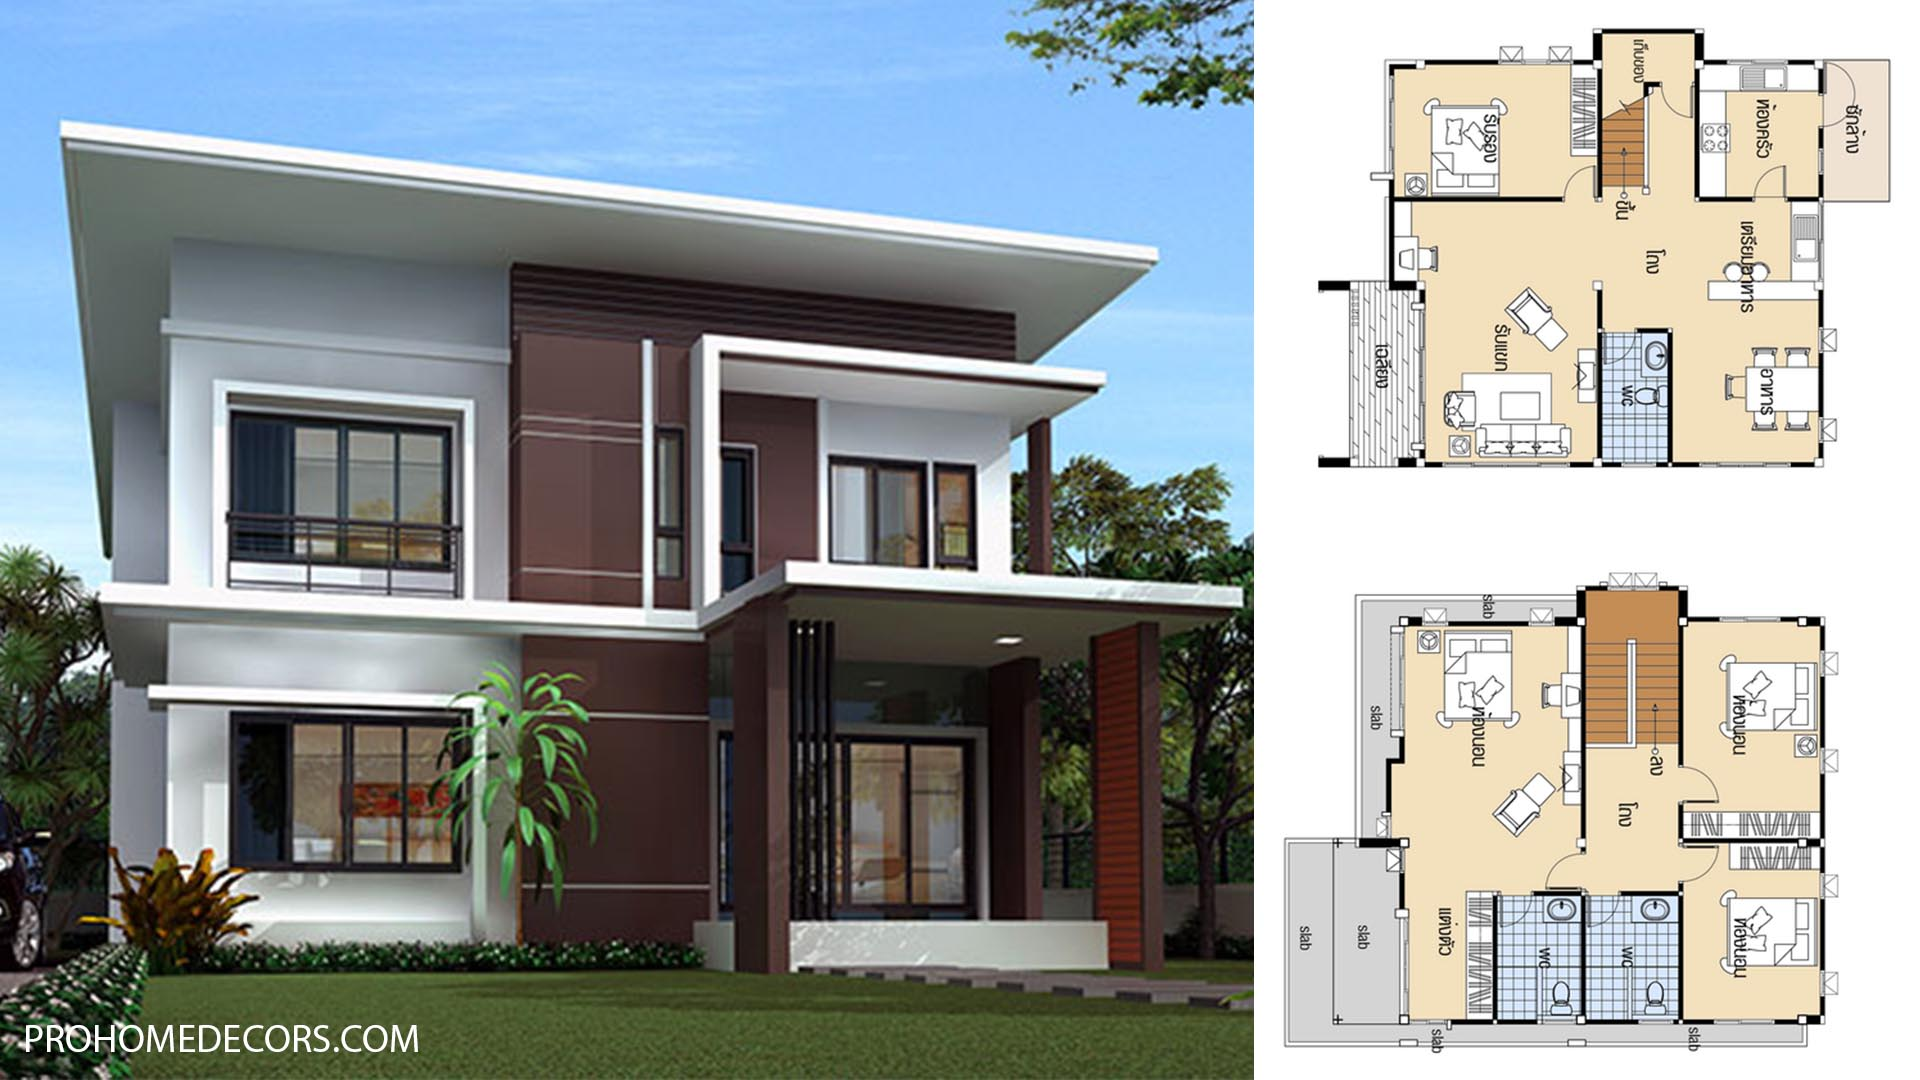 House Plans 9.7×11.4 with 4 Beds